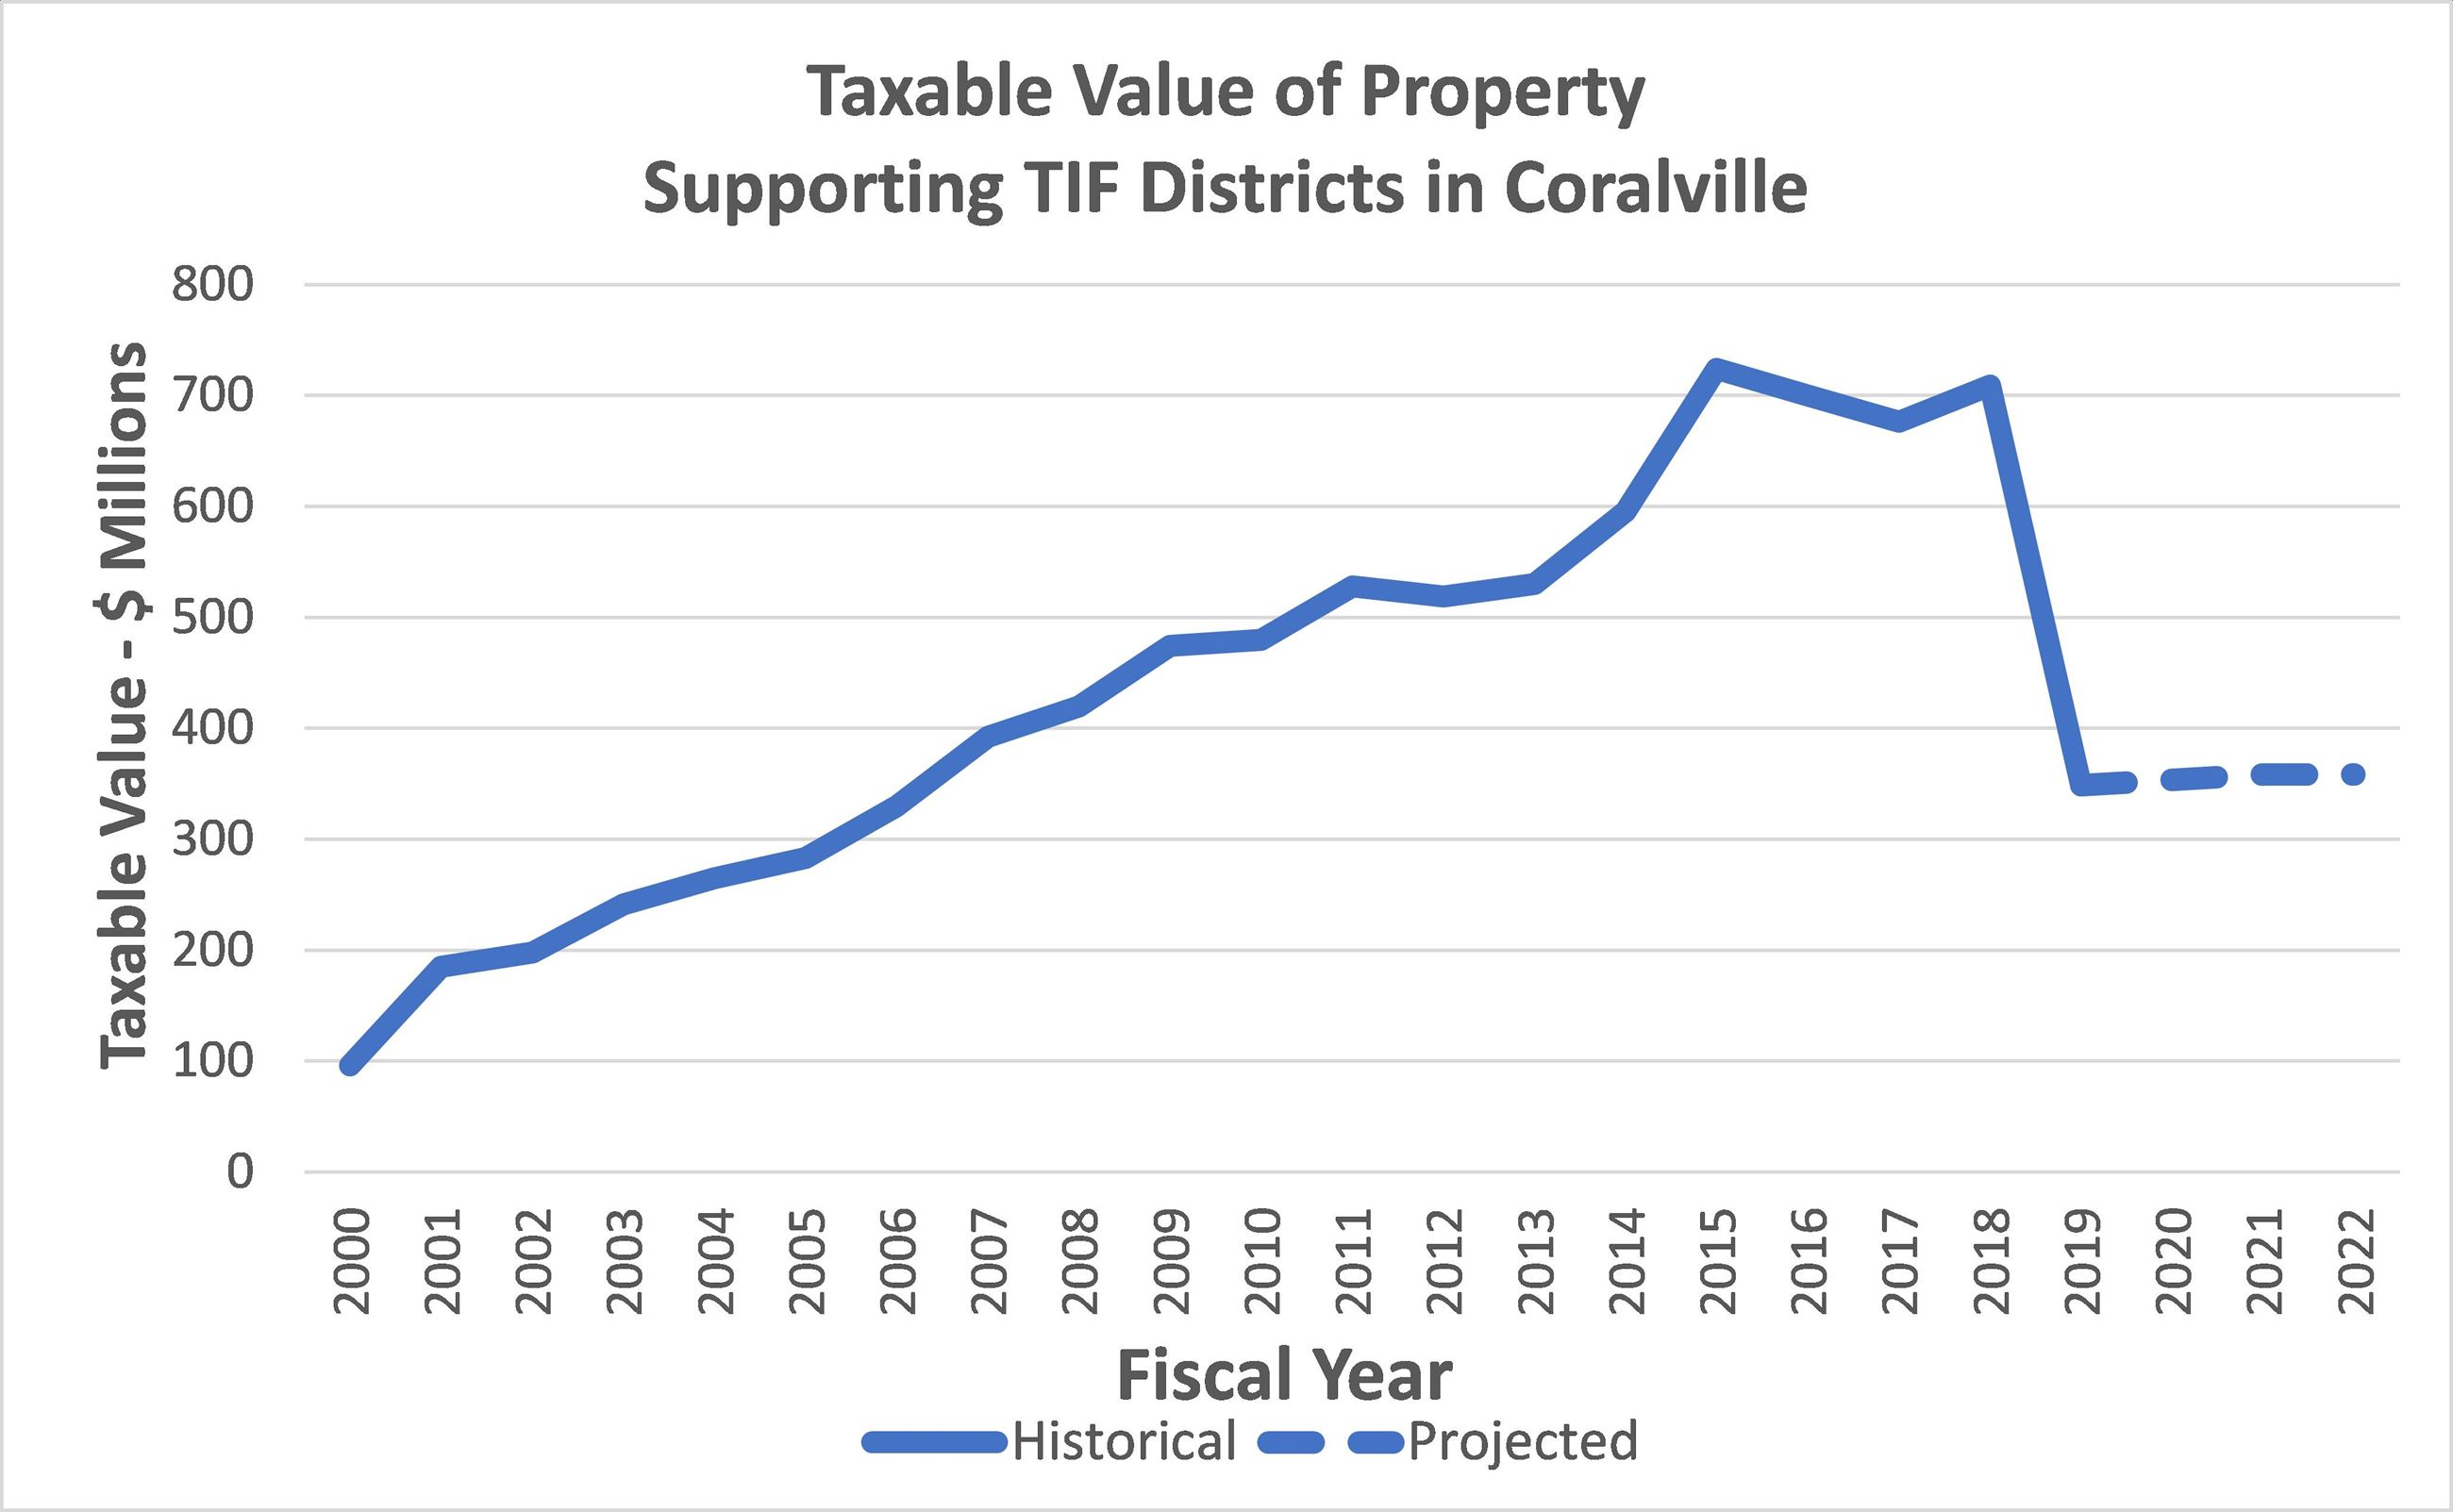 Taxable Value of Property Supporting TIF Districts in Coralville